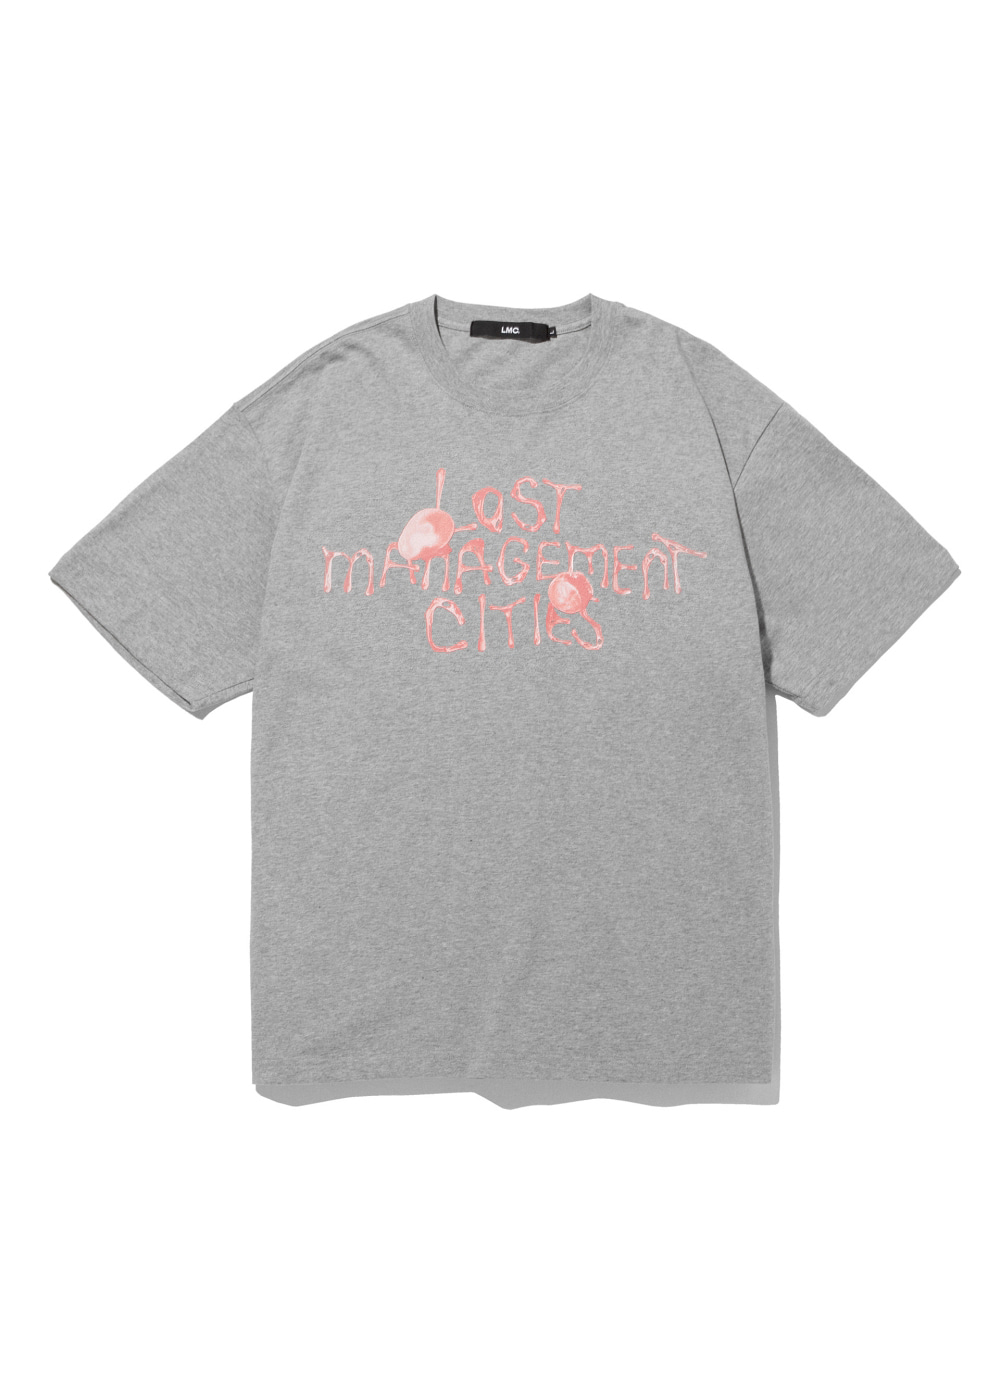 LMC BUBBLE GUM TEE heather gray